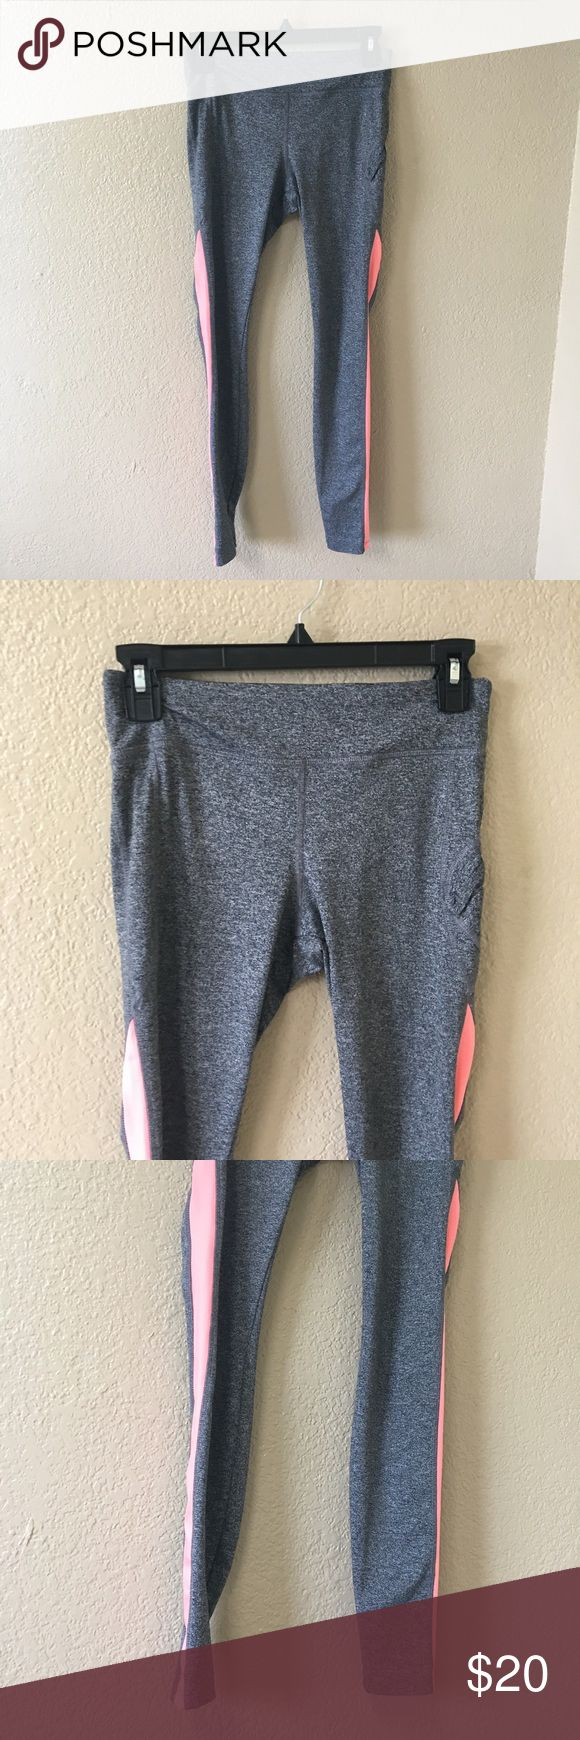 Forever 21 gray athletic leggings pink size small Forever 21 gray athletic leggings pink stripe Forever 21 Pants Leggings